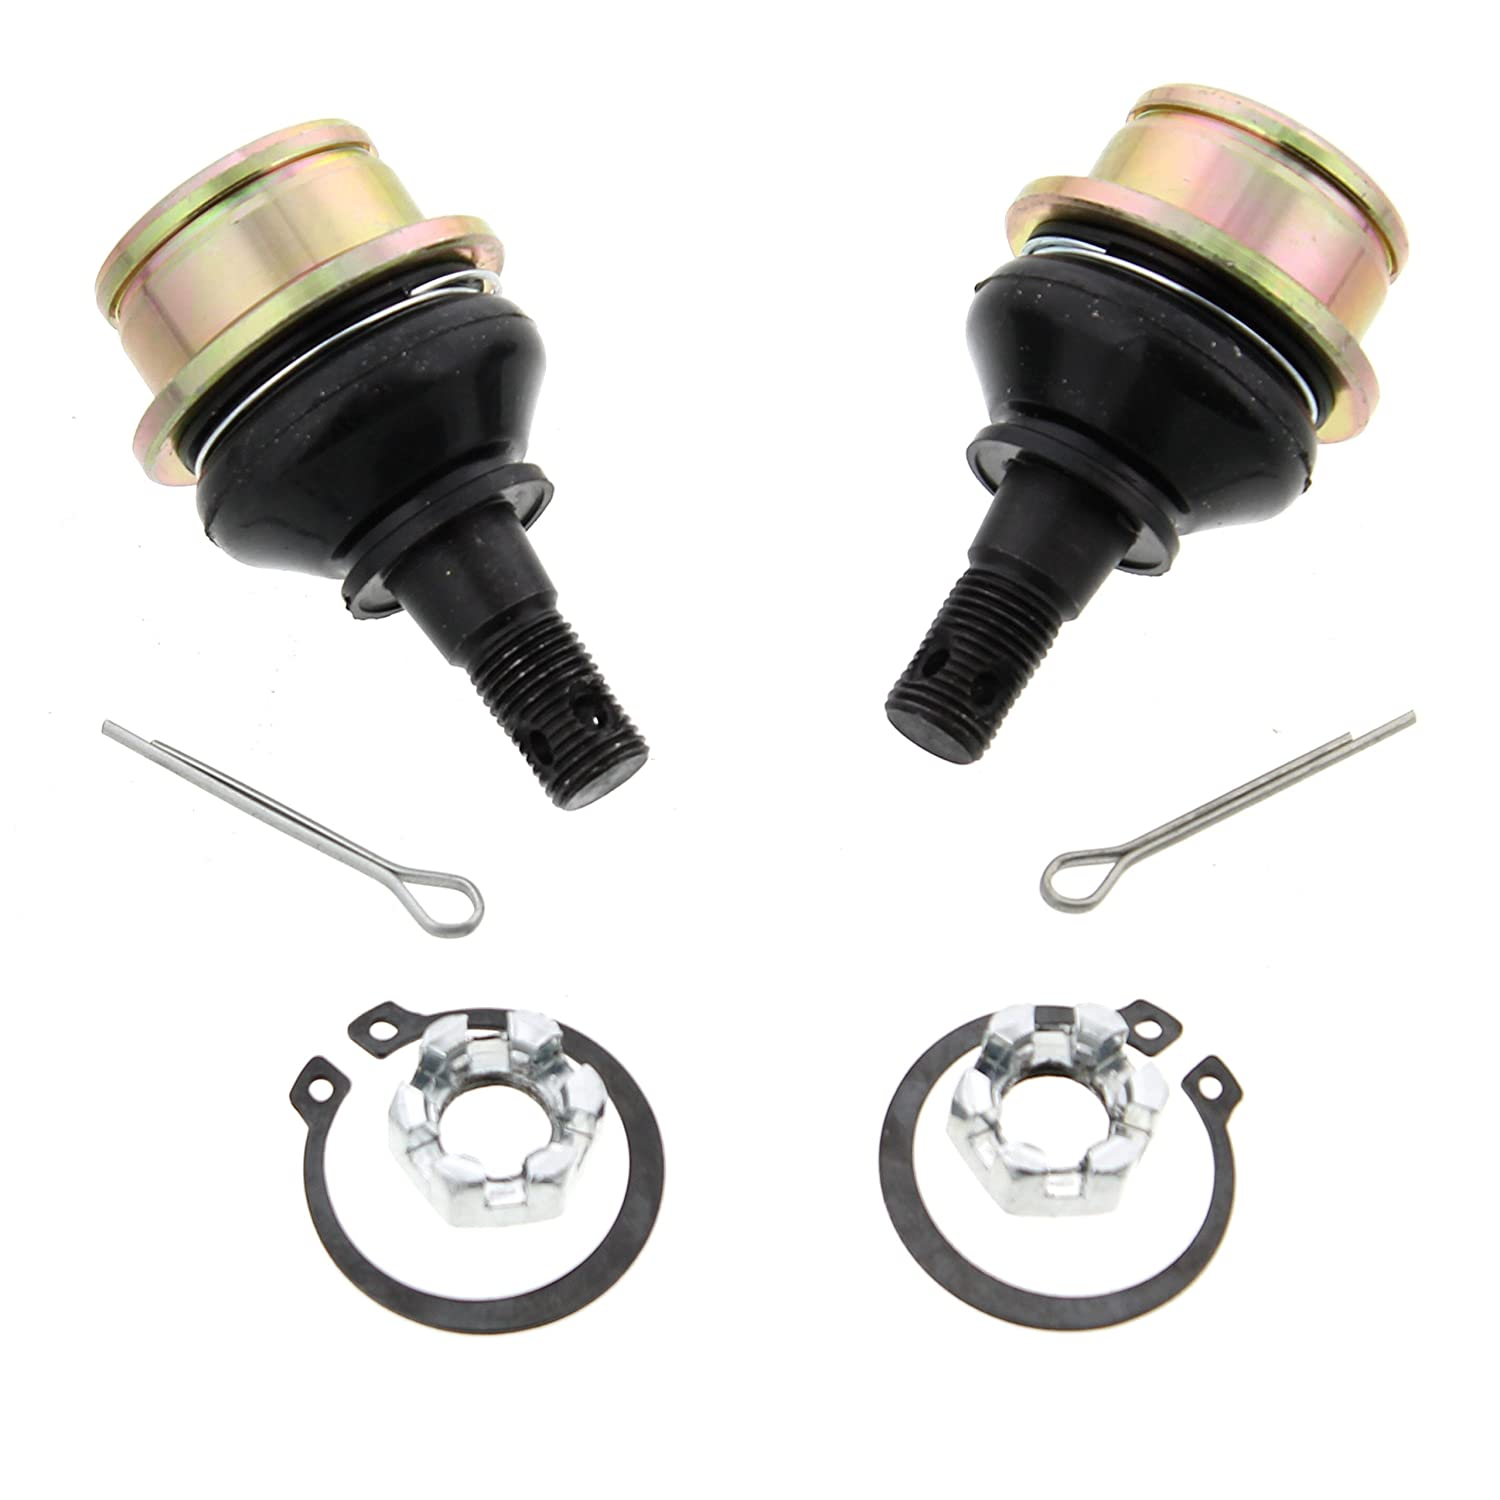 2008-2015 Kawasaki 750 Teryx KR 750 Lower Ball Joints x2 CycleATV